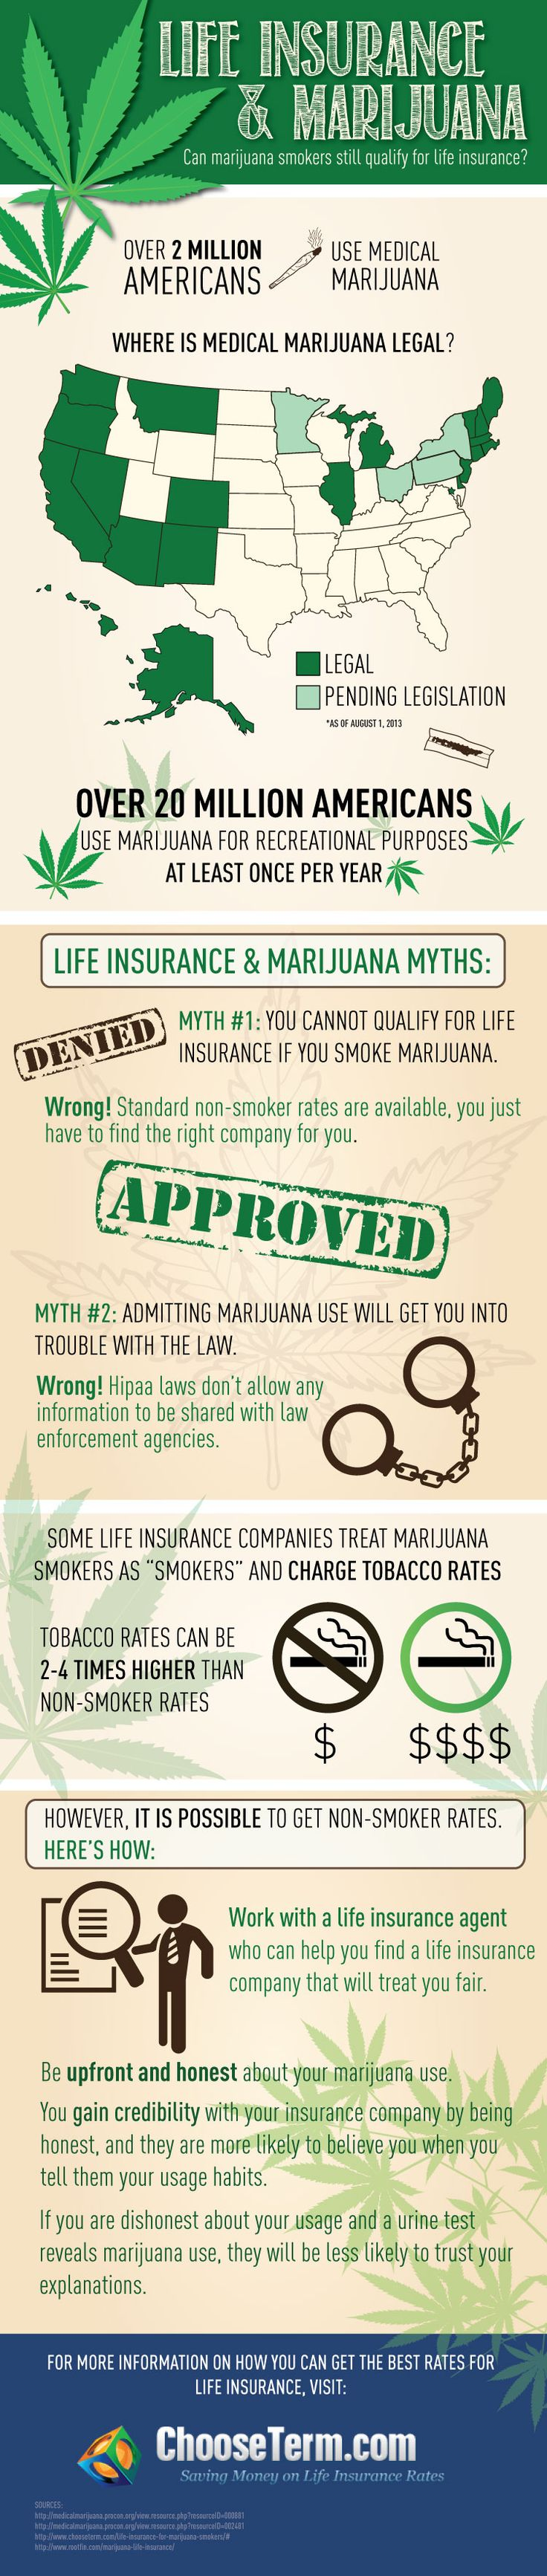 Life Insurance and Marijuana Infographic